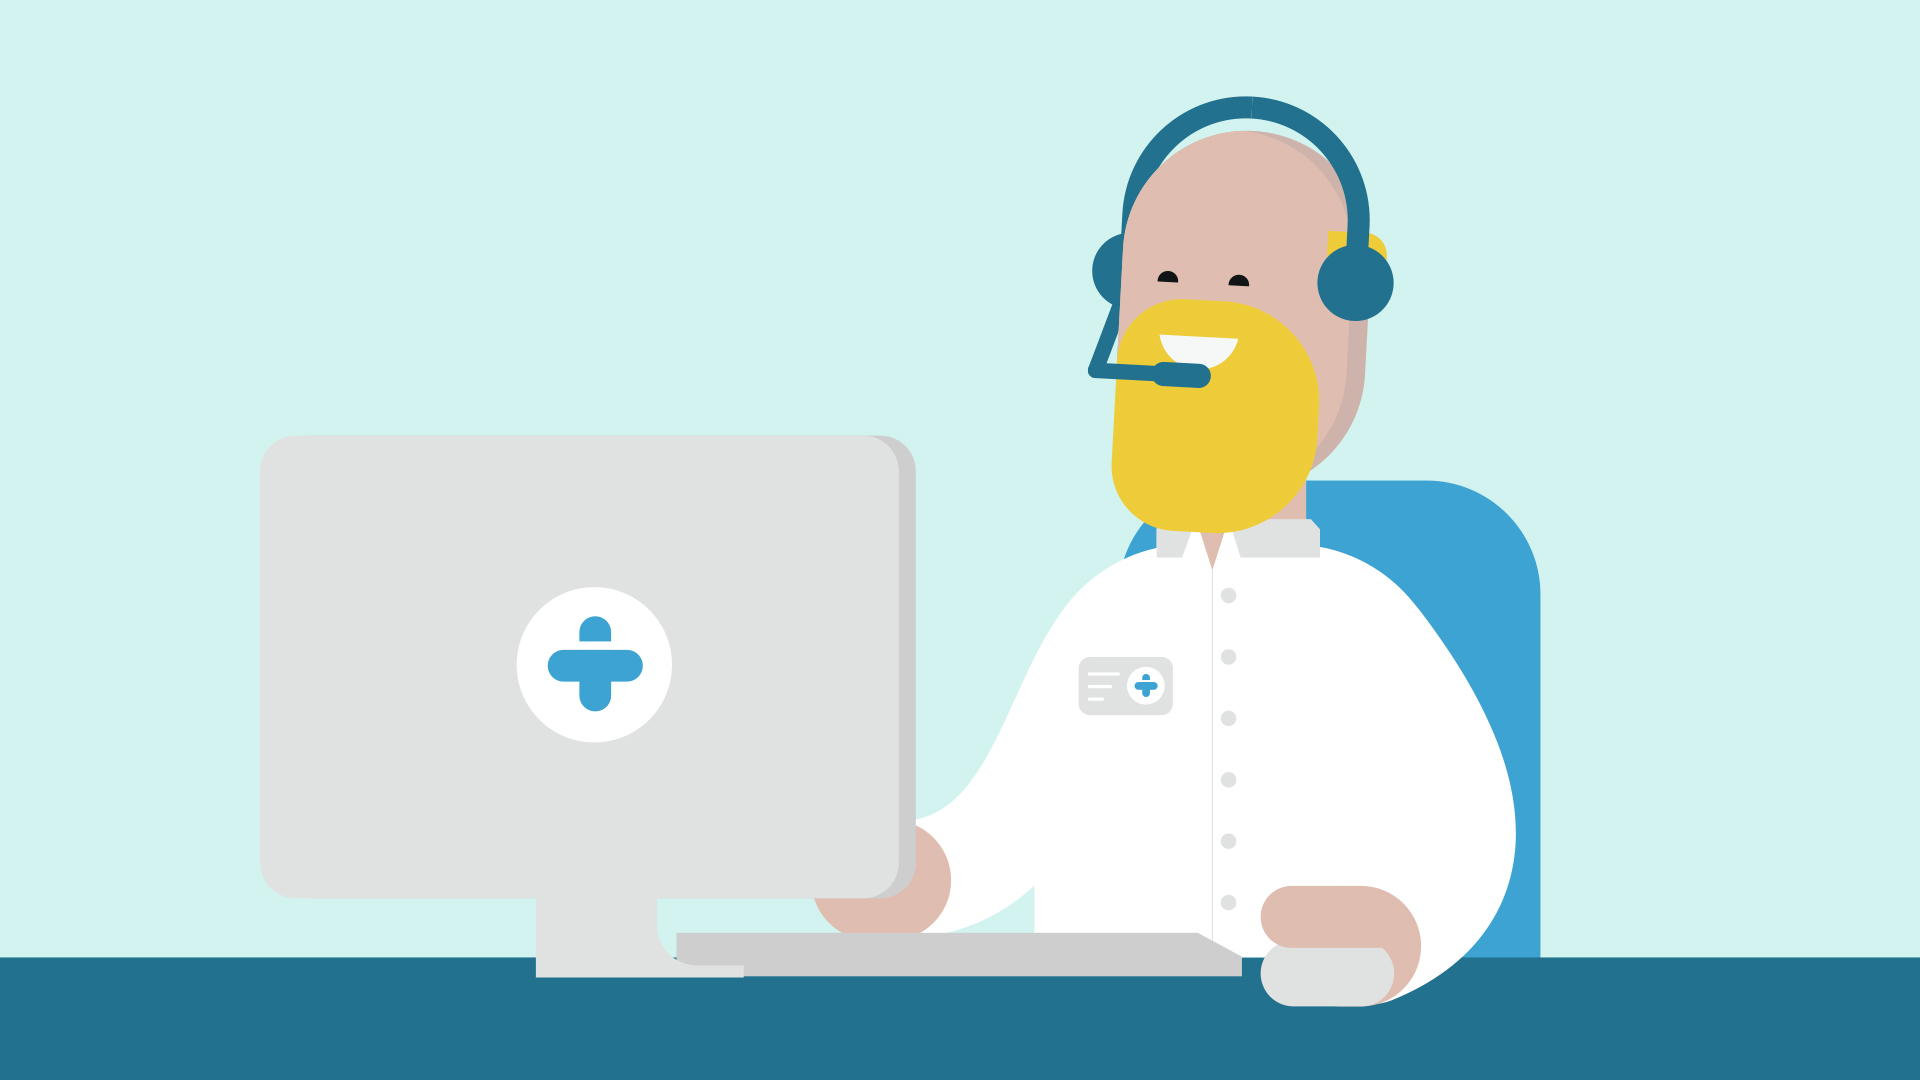 call center, customer servise, character - TREATED---PHARMACEUTICAL,-MEDICAL-PRESCRIPTION-SERVICE---Young-Illustration-&-Animation-Studio-Manchester-2D.jpg